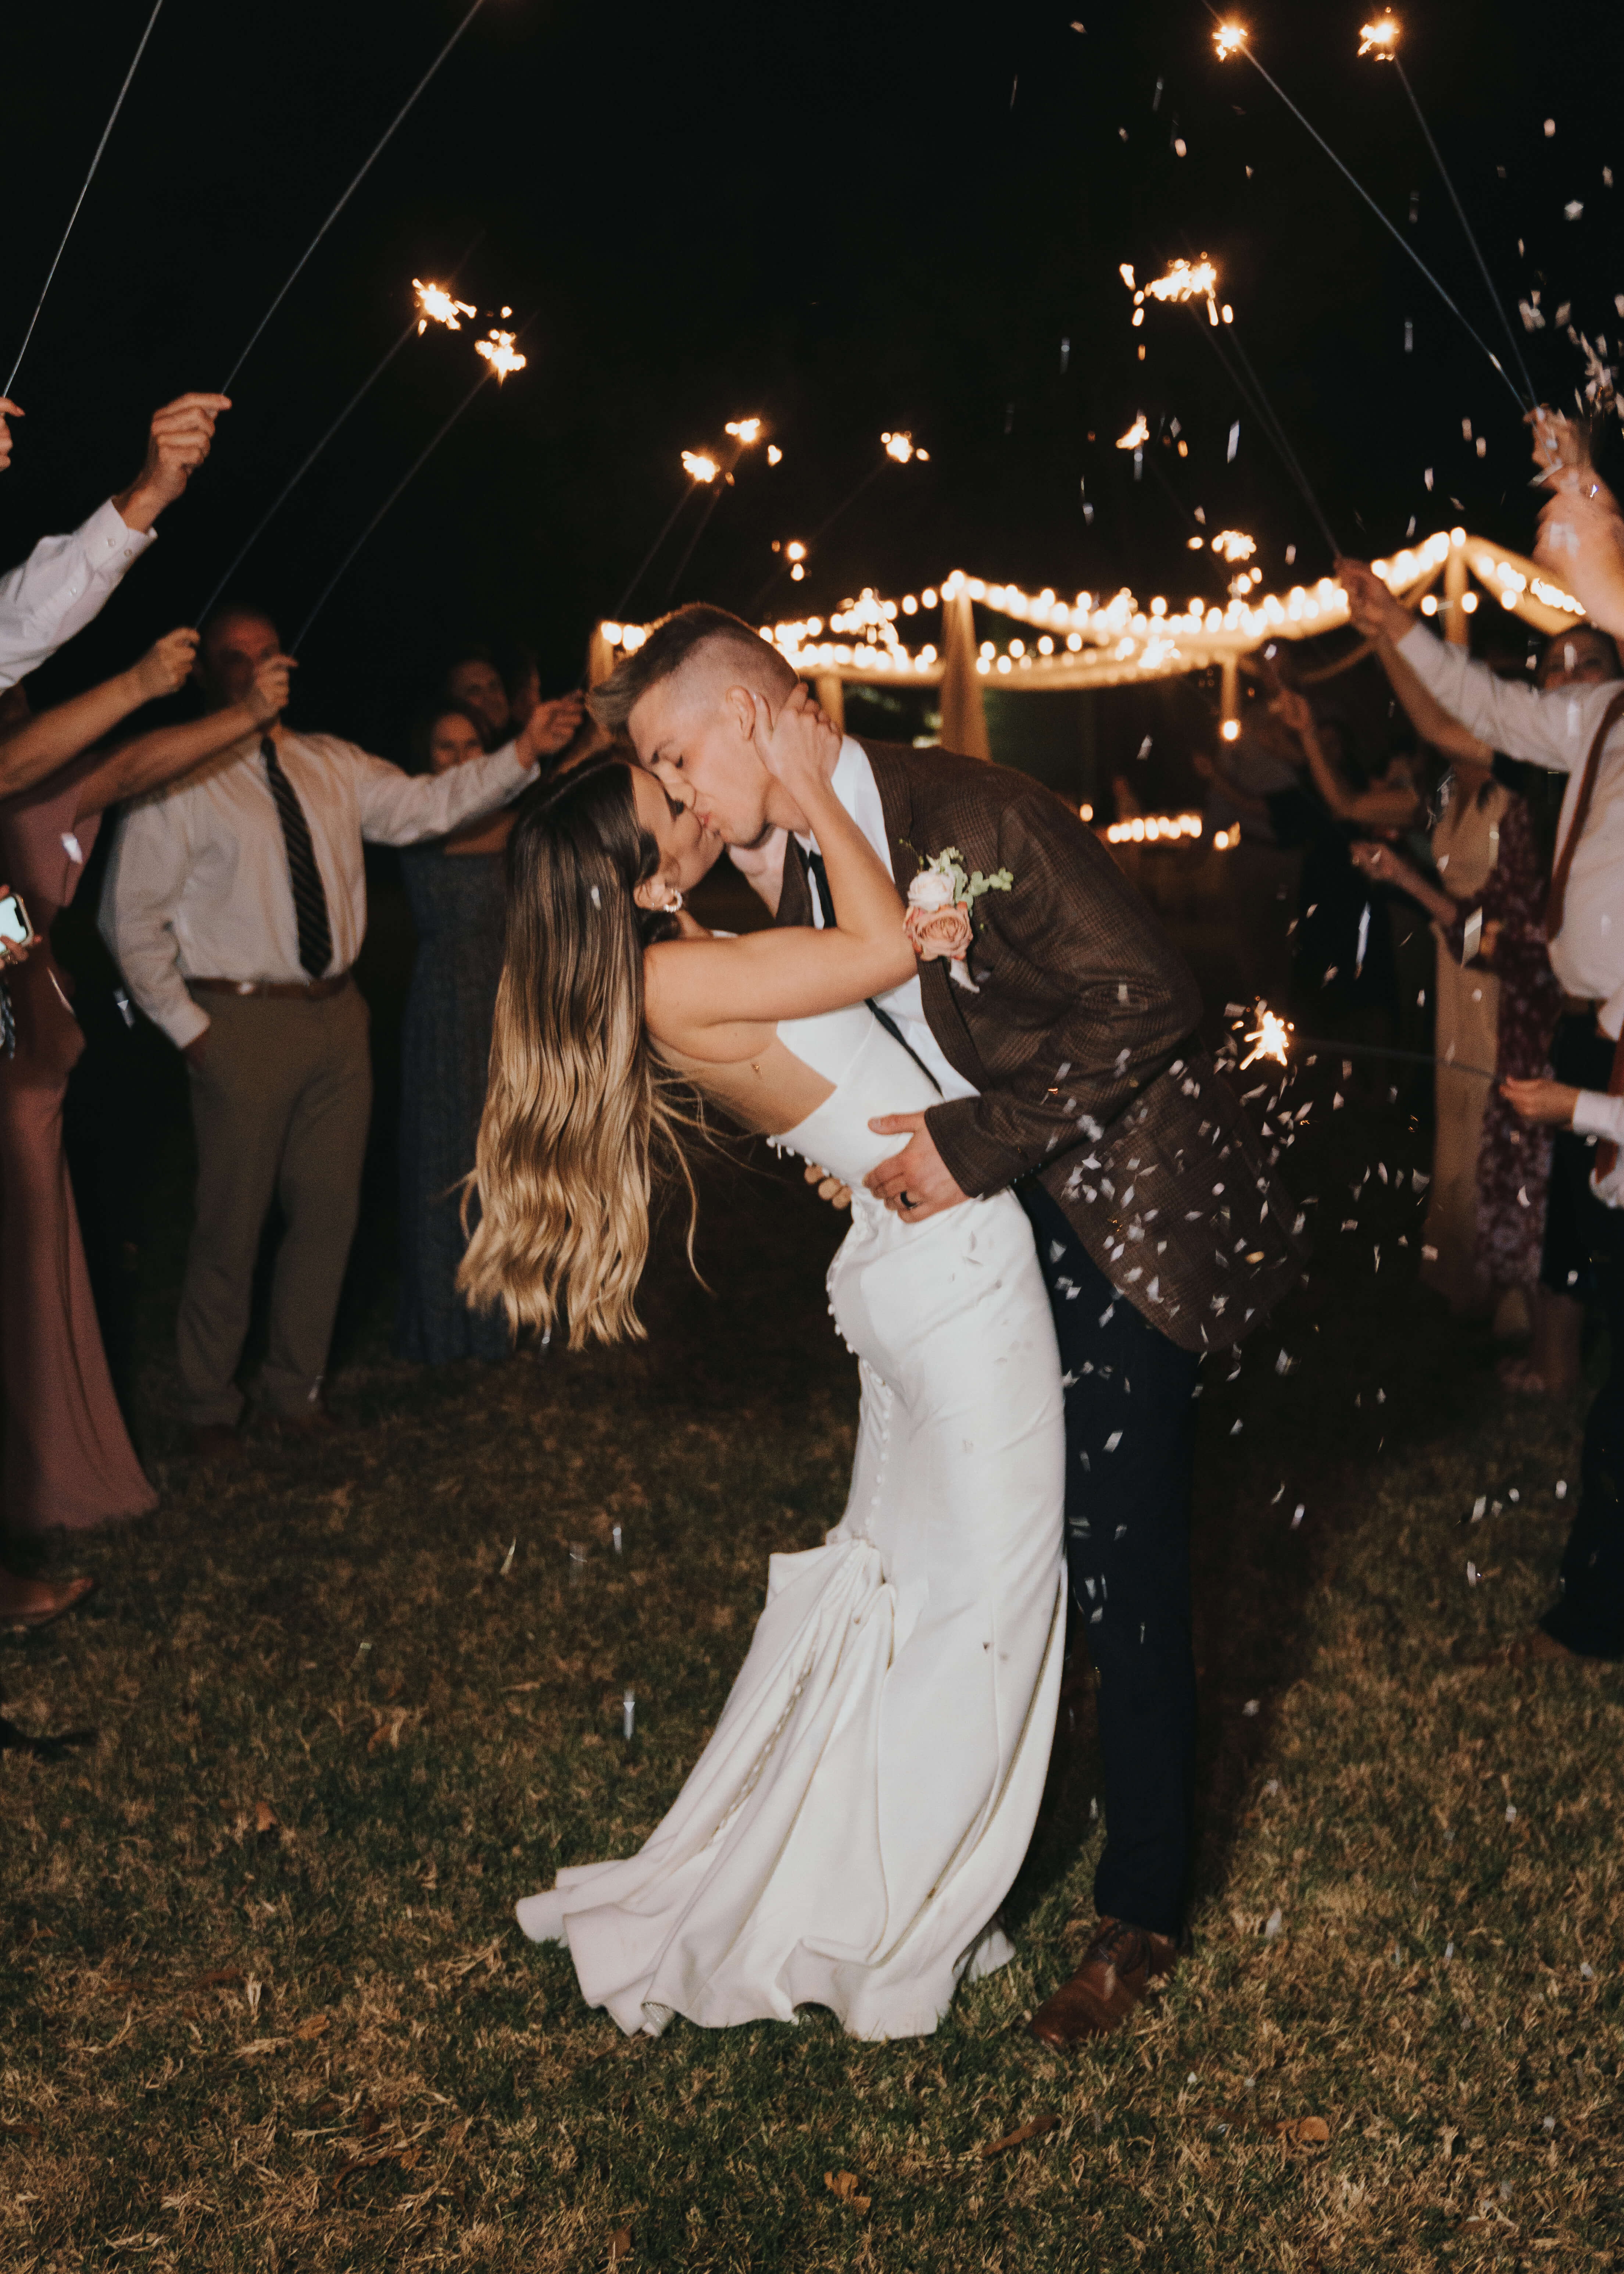 sparkler exit send off kiss photo with confetti